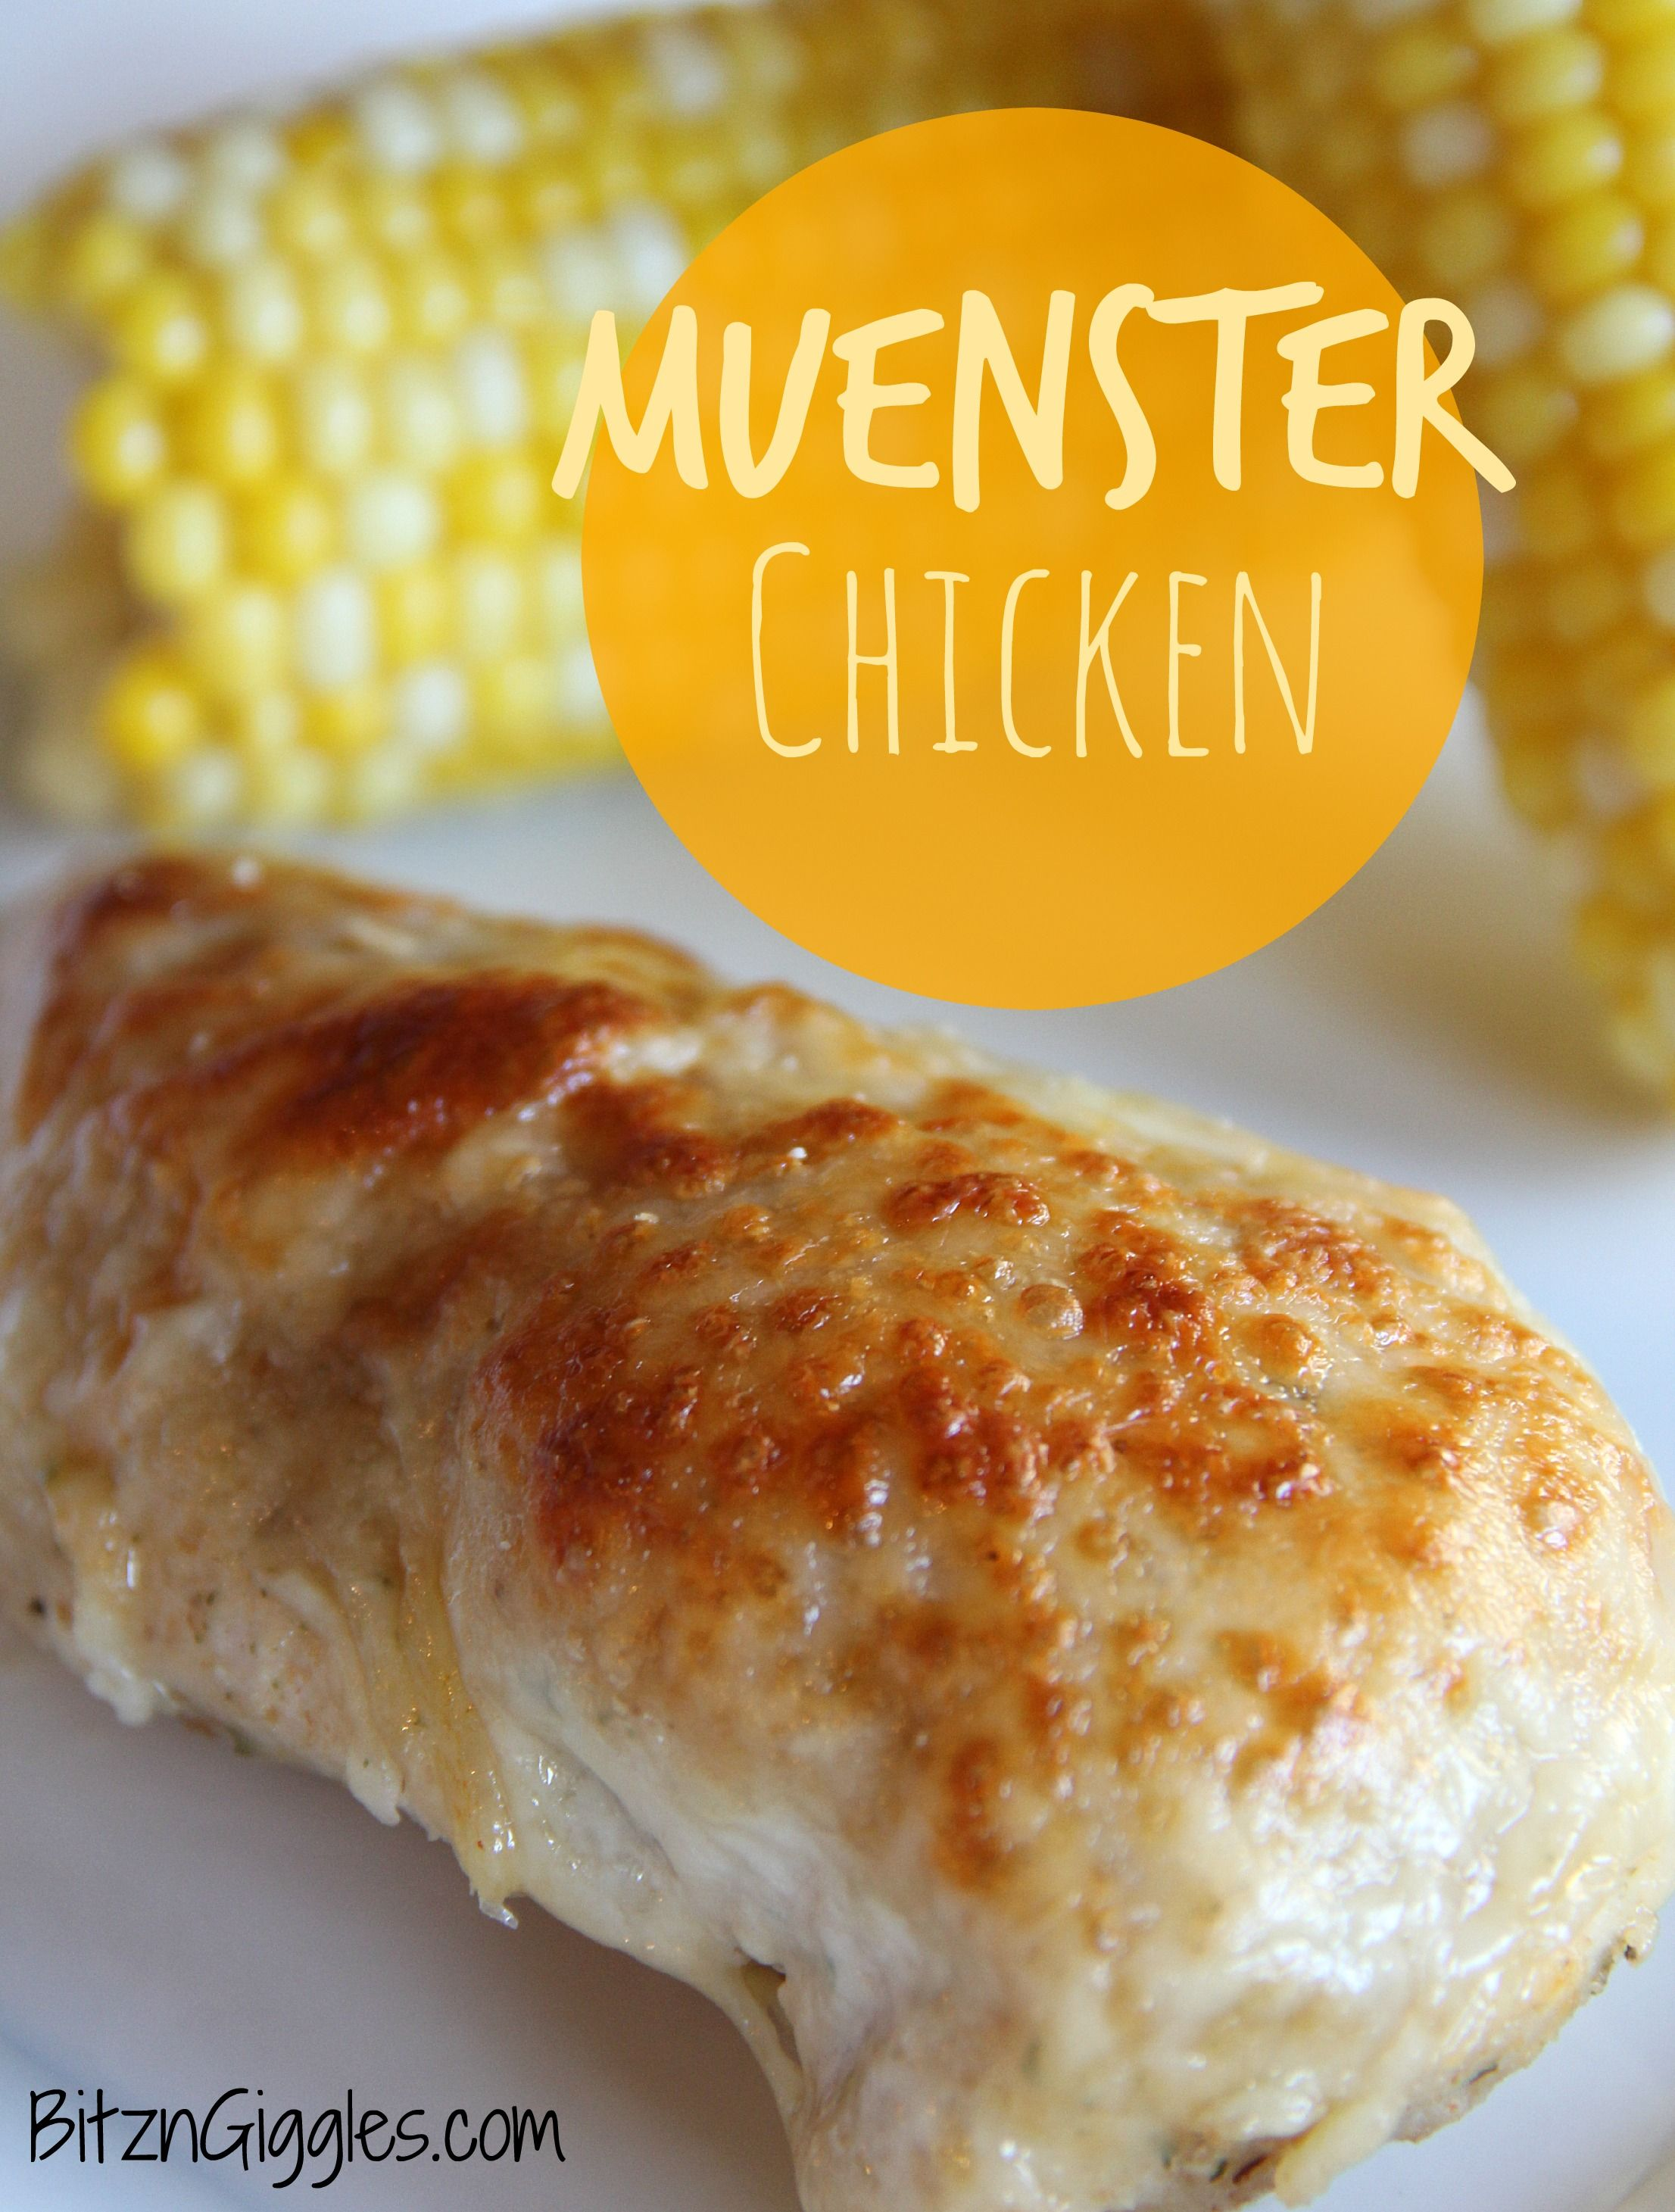 Muenster Chicken Oven Baked Chicken Breasts Dredged In Bread Crumbs Covered With A